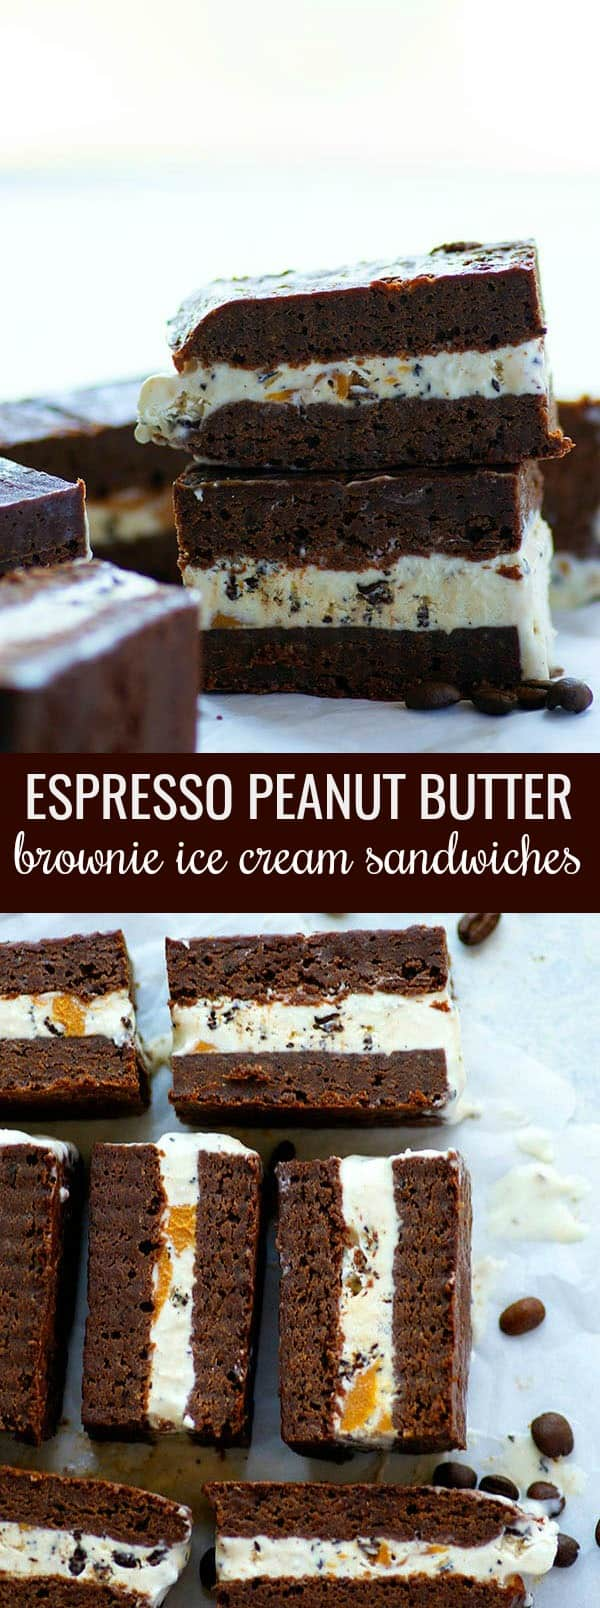 Brownie ice cream sandwiches are dressed up with a no-churn espresso ice cream and swirls of creamy peanut butter for an incredible twist on ice cream sandwiches that coffee lovers will adore!